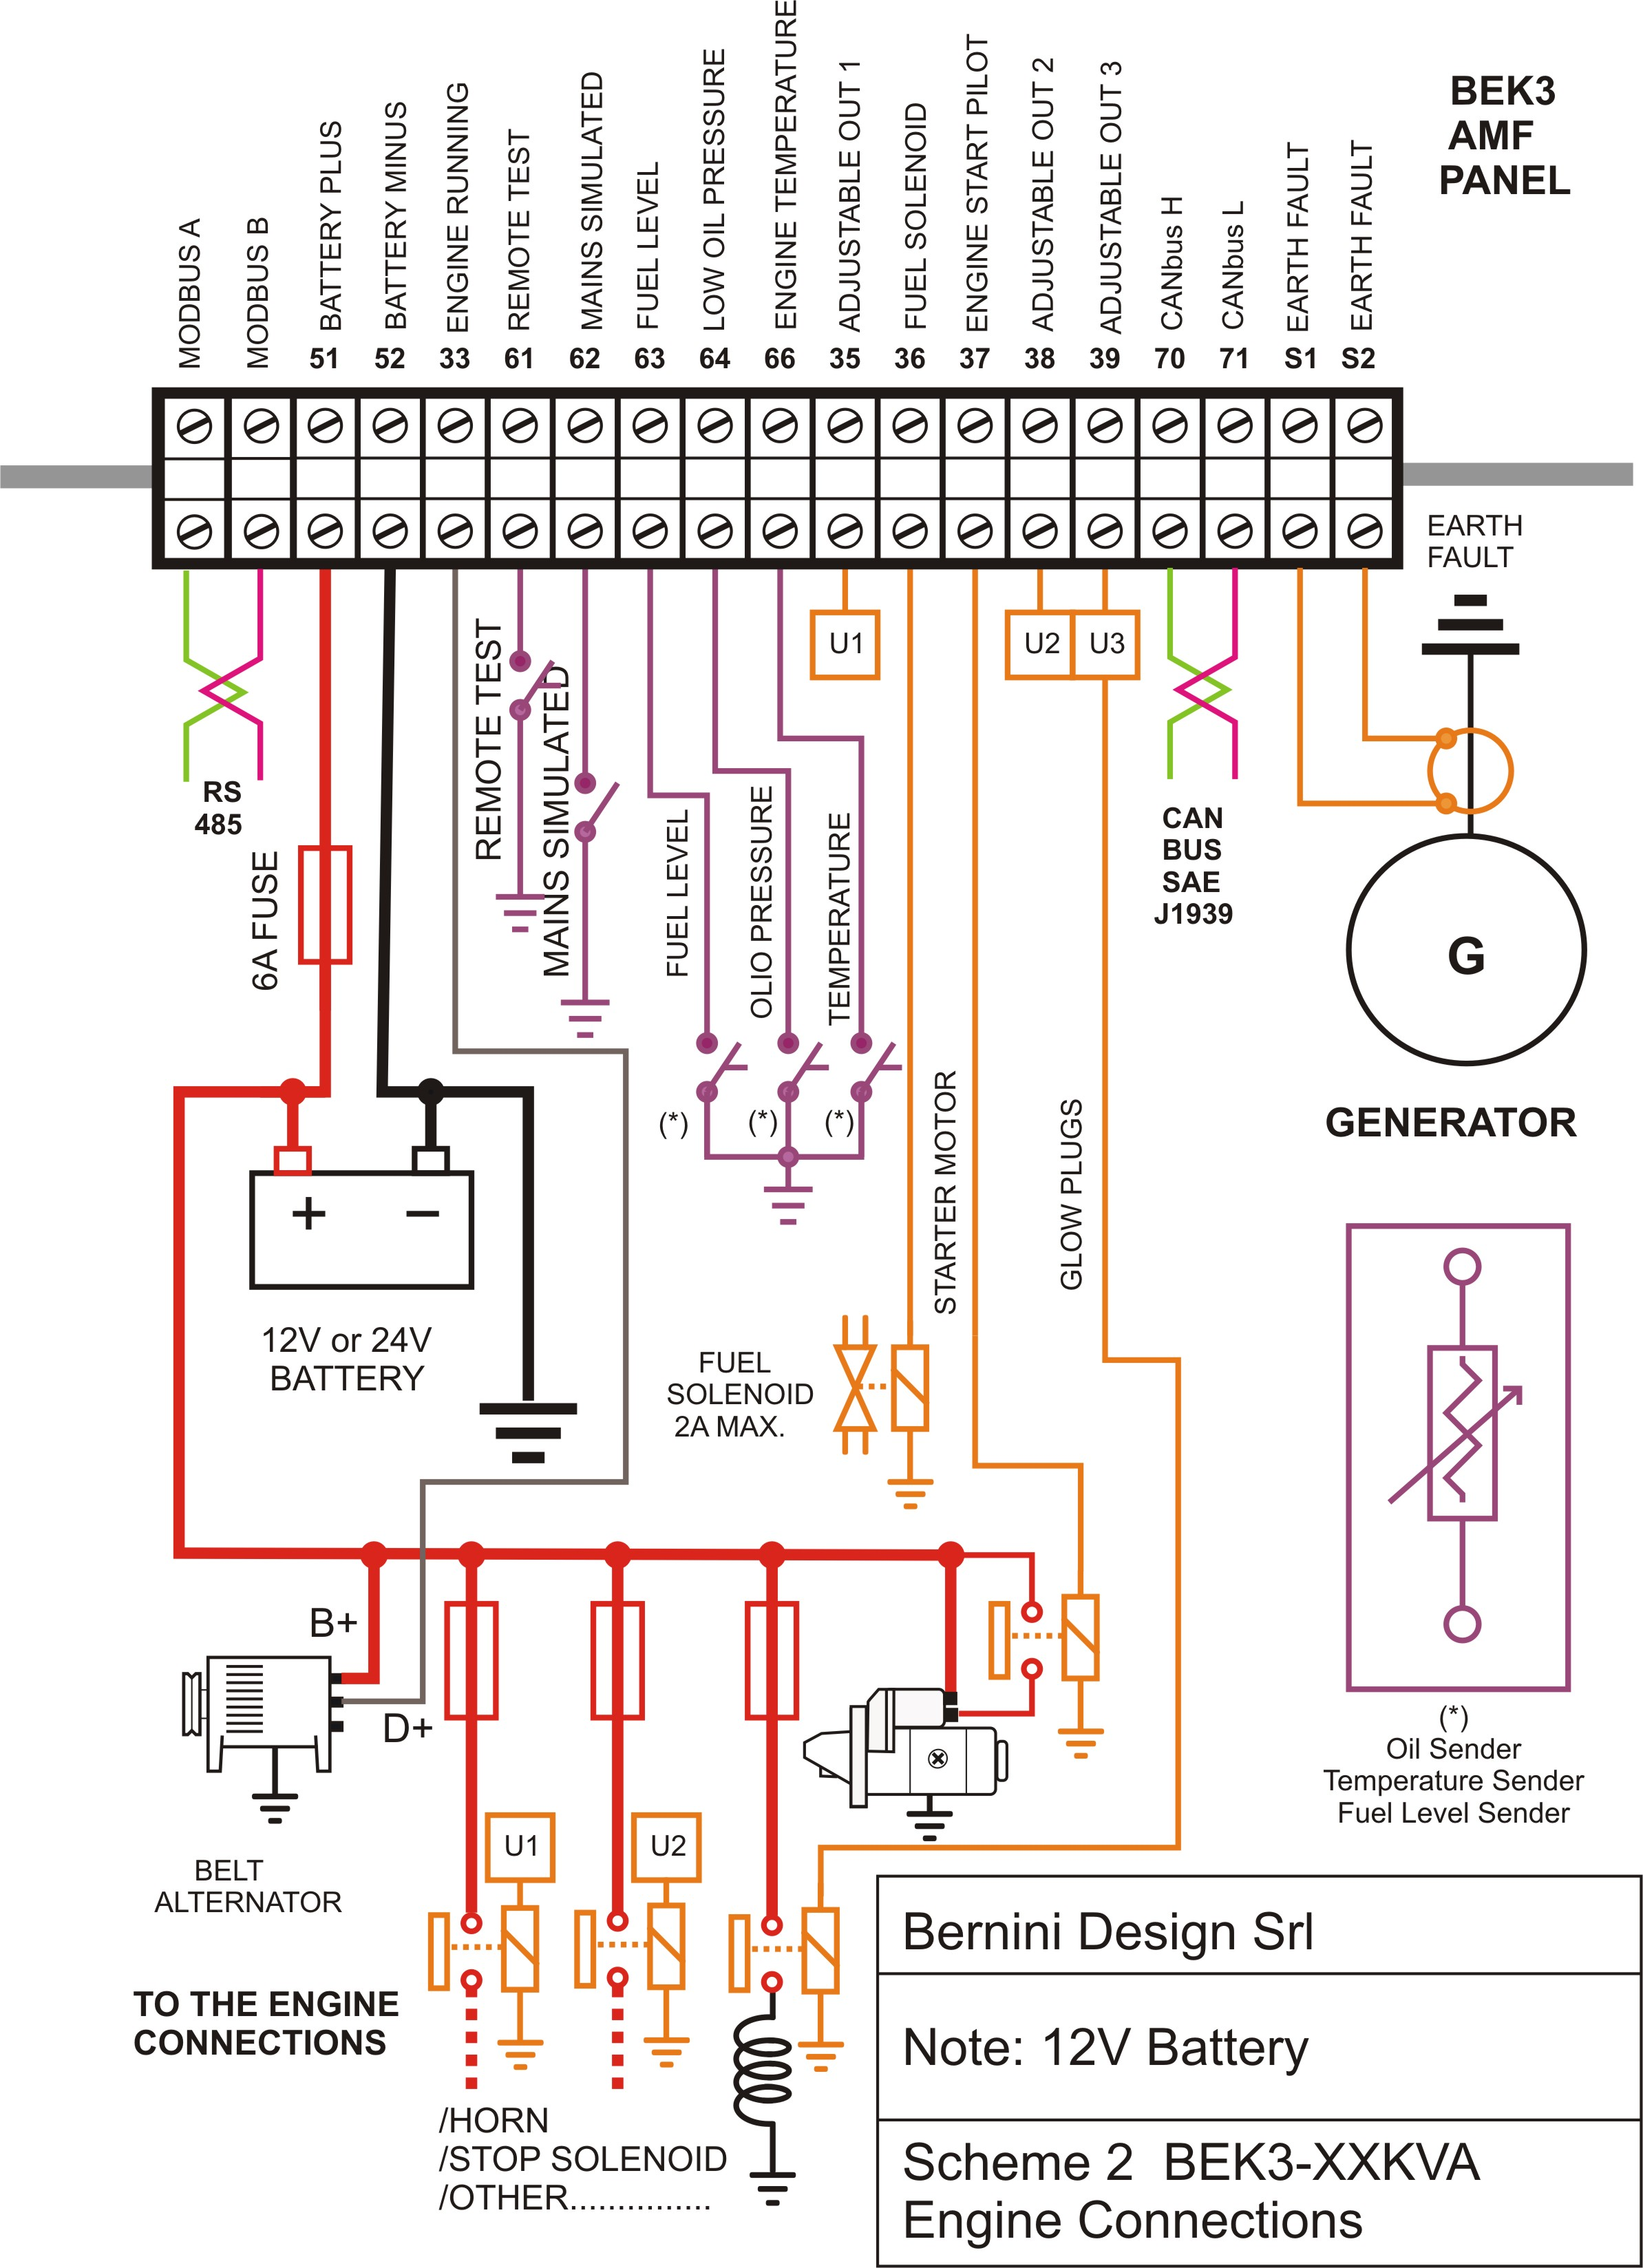 AMF Control Panel Circuit Diagram PDF Engine Connections dse704 wiring diagram gmc fuse box diagrams \u2022 wiring diagrams j basic electrical wiring pdf at bakdesigns.co